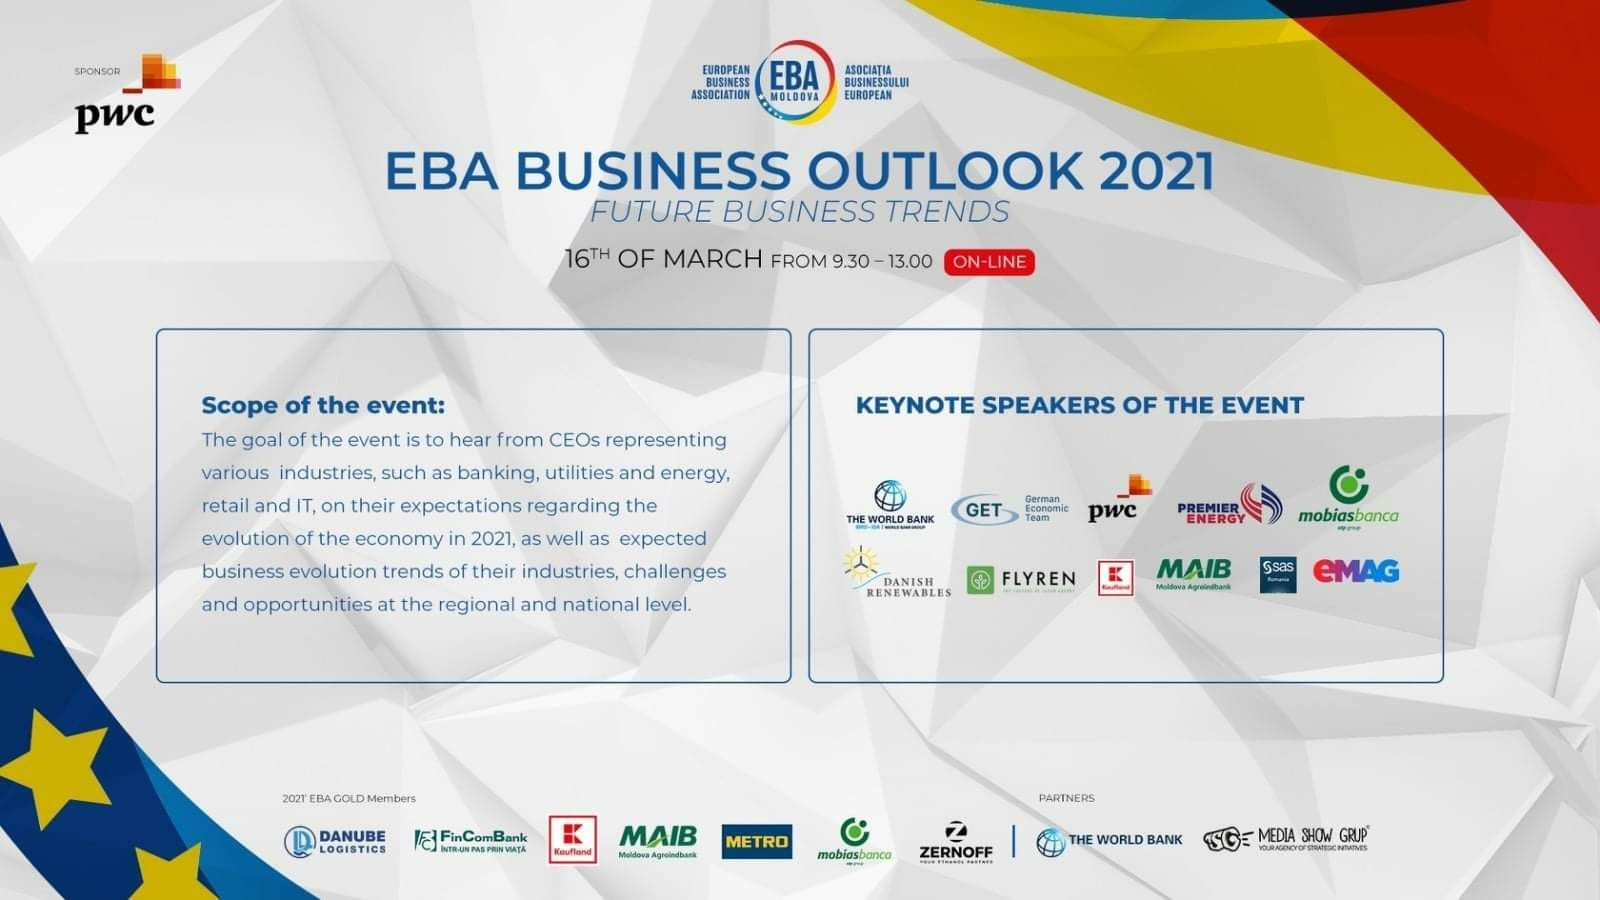 Welcome to EBA BUSINESS OUTLOOK 2021